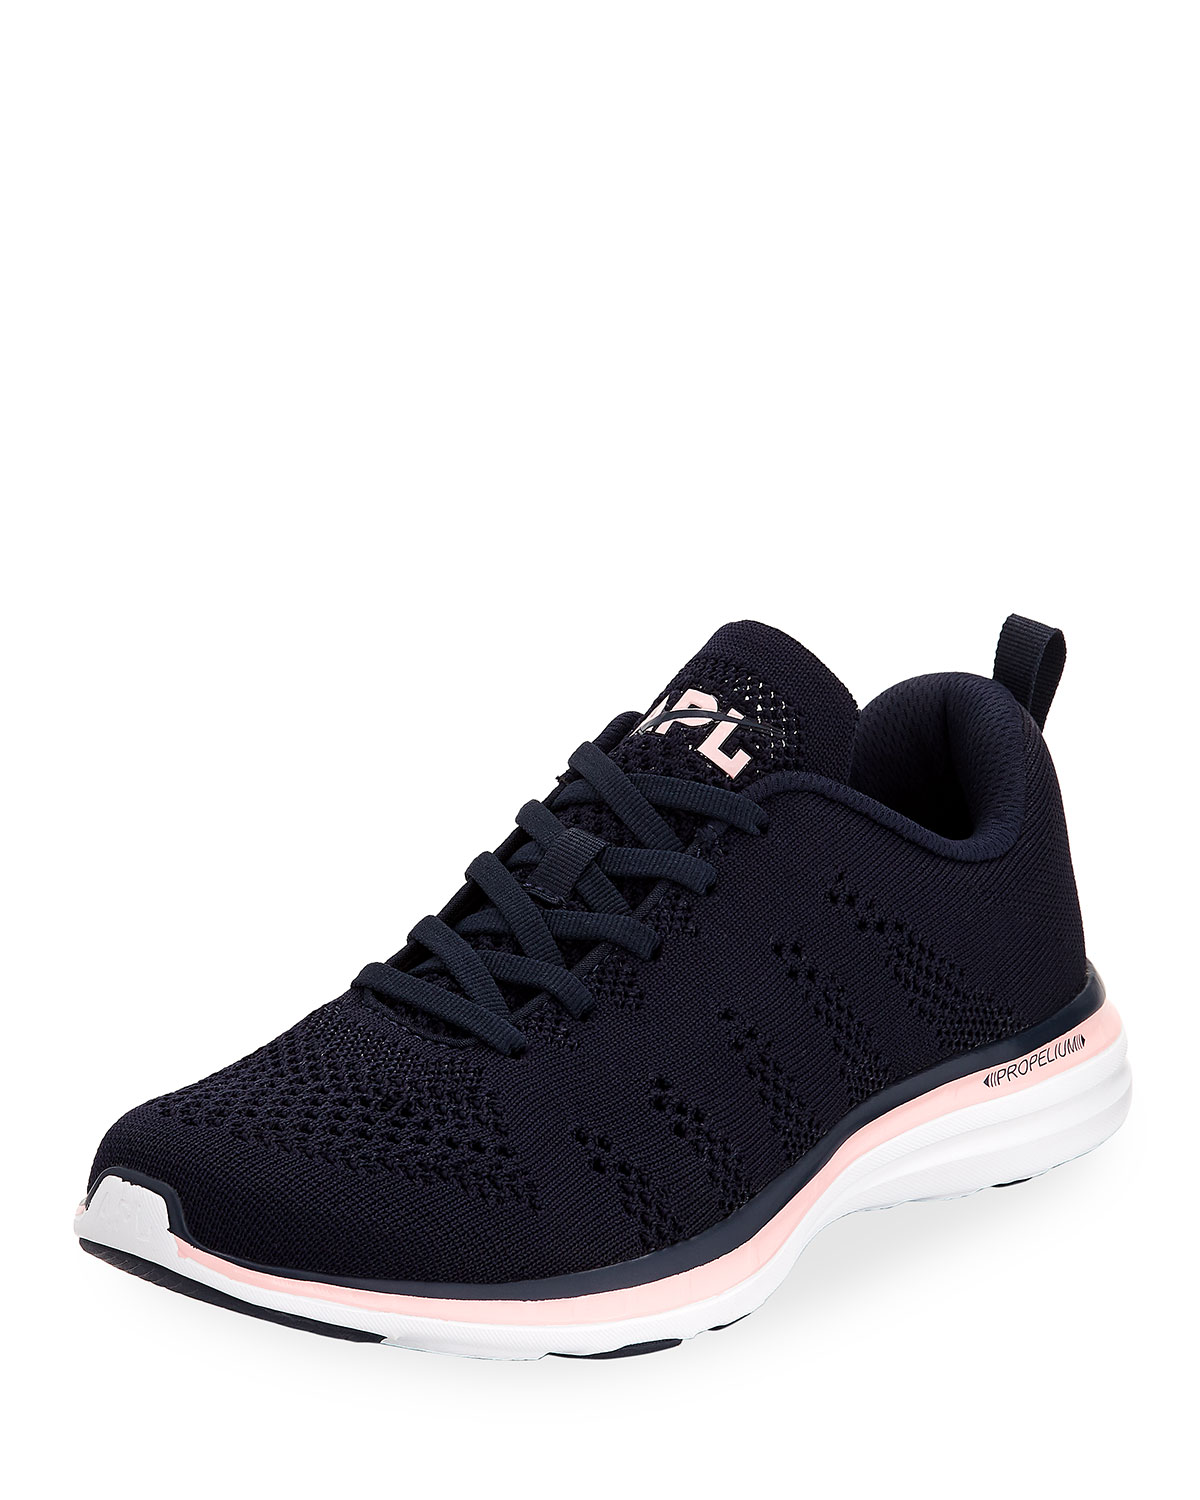 Athletic Propulsion Labs Women'S Techloom Pro Knit Low-Top Sneakers in Midnight Gos Pink